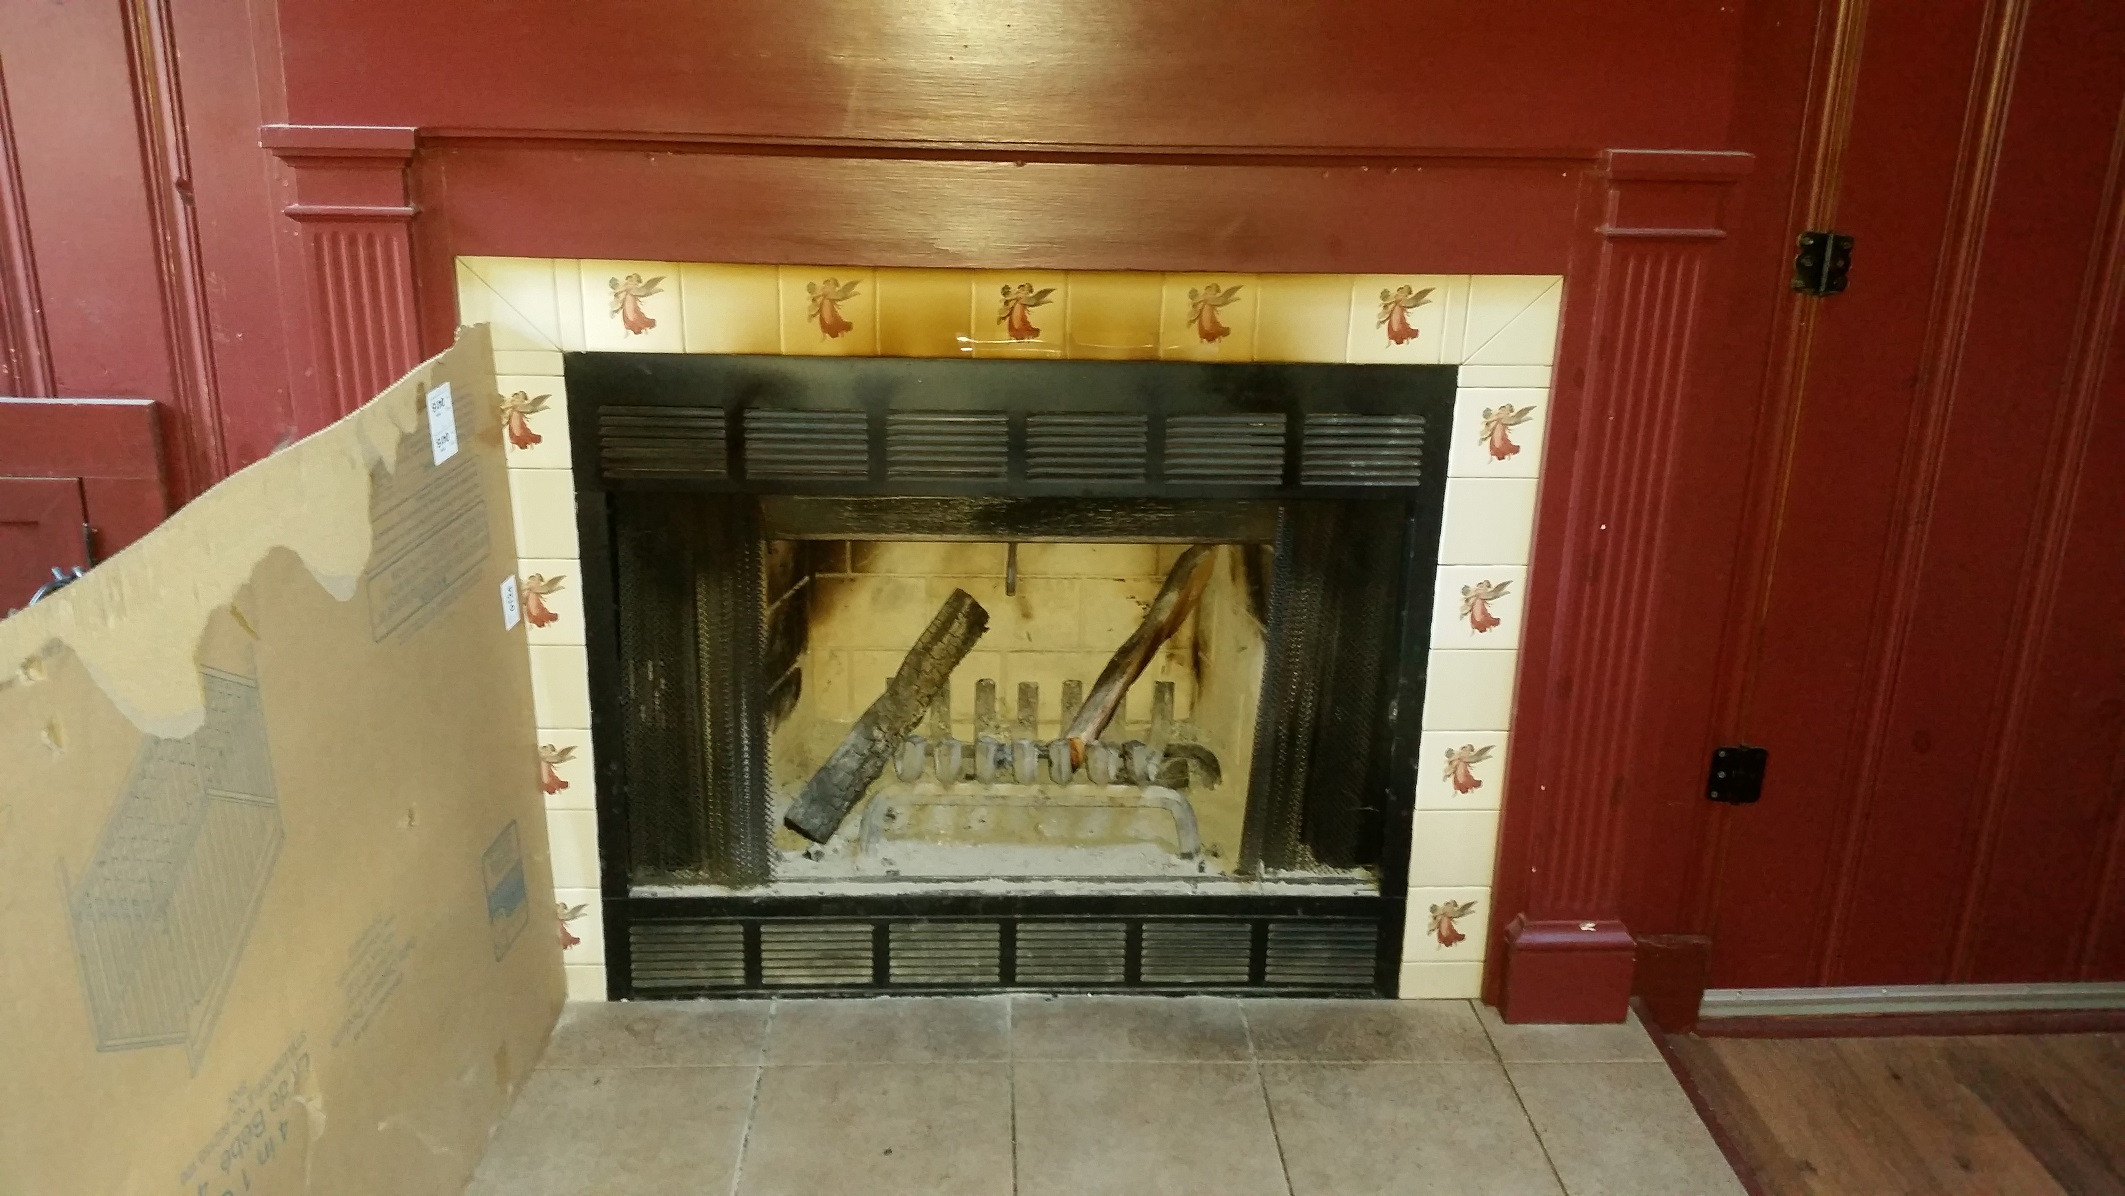 Fireplace Grate Blowers Wood Burning Chimney How Can I Force Hot Air Through This Fireplace Grate